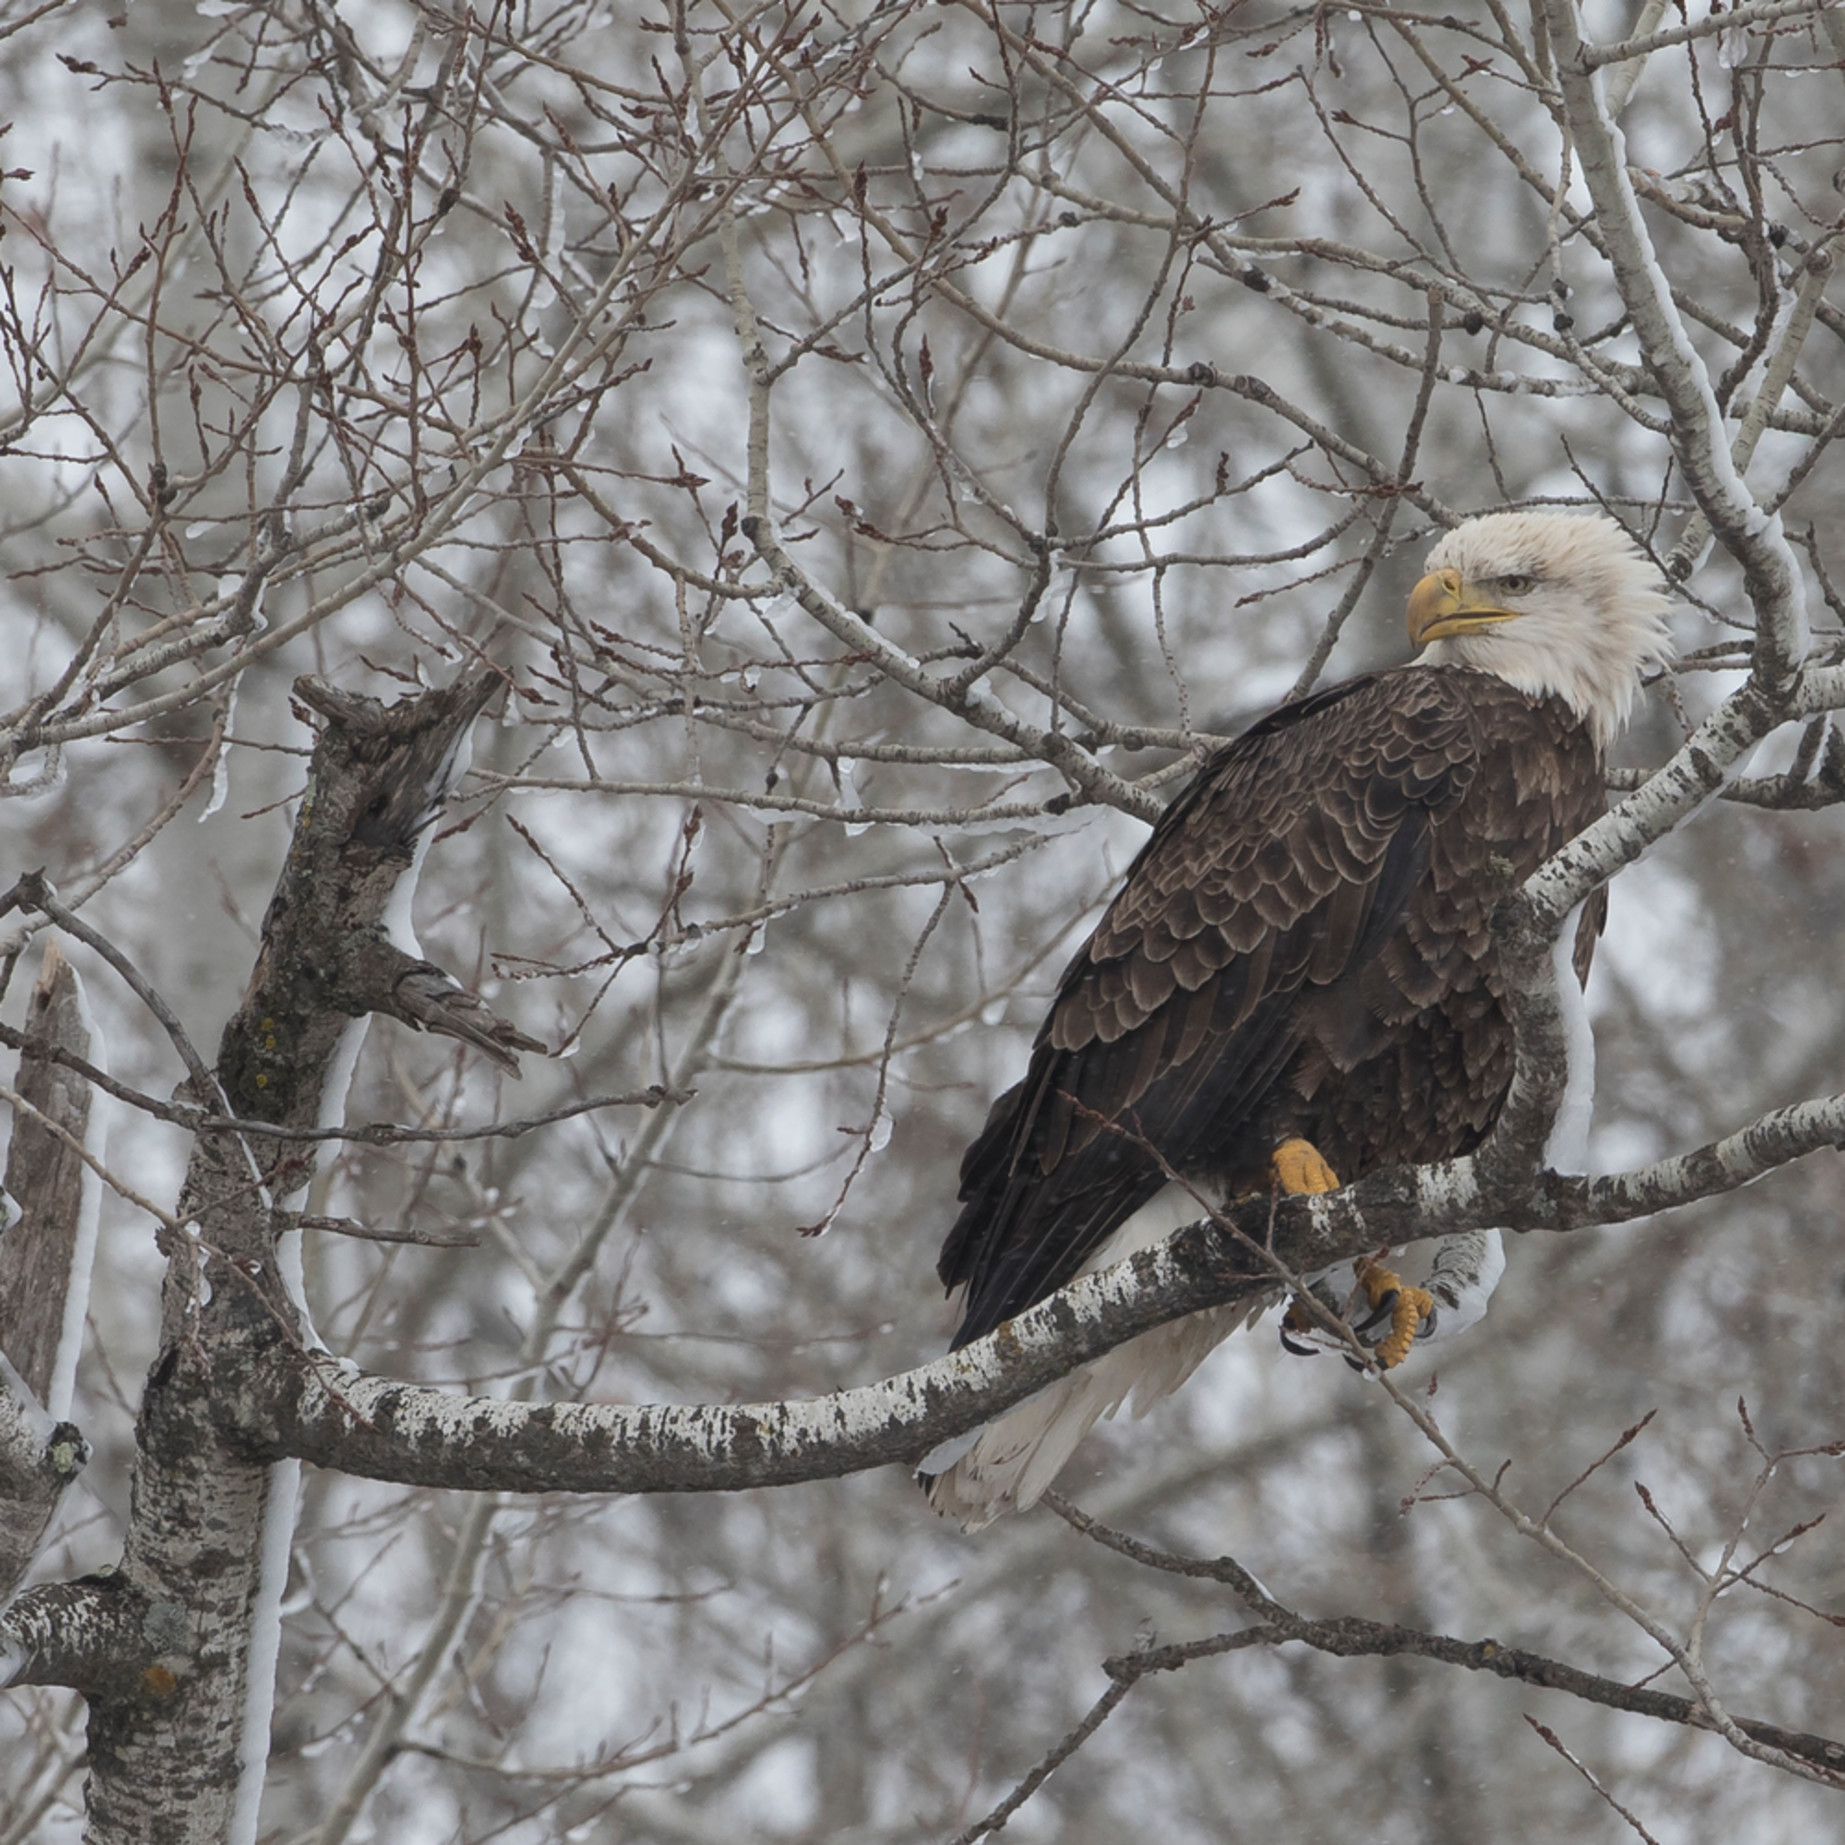 Bald eagle perched in minnesota it0fla